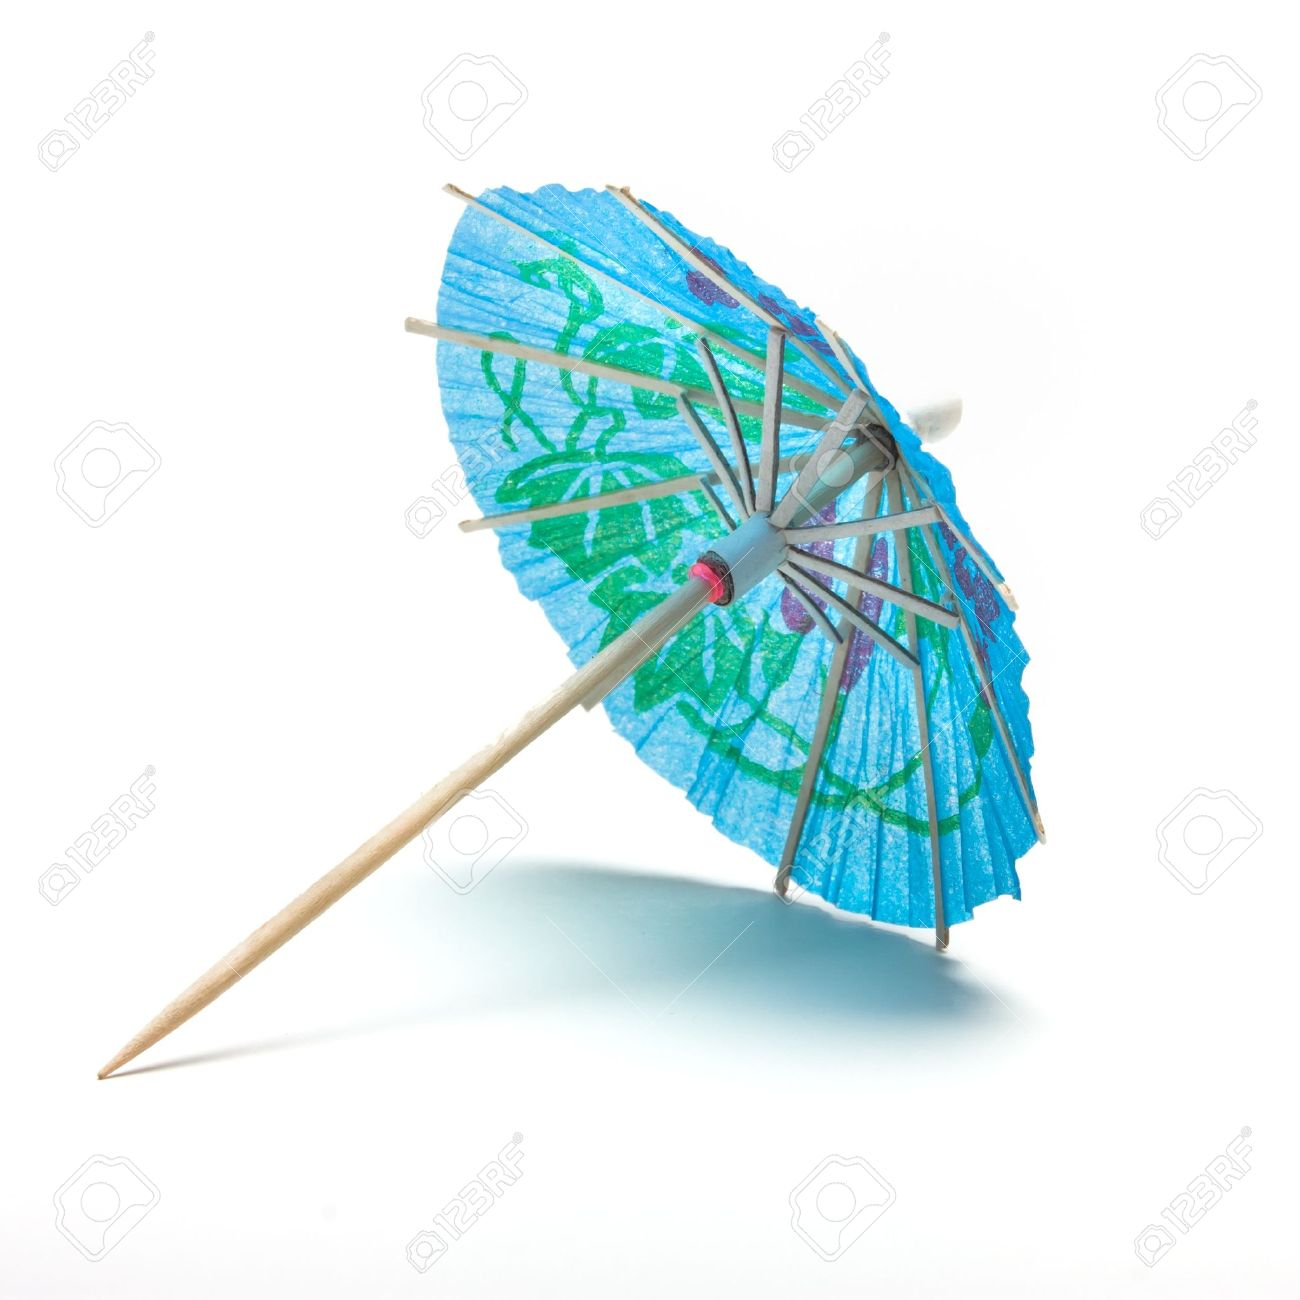 7407018-Cocktail-Umbrella-from-low-perspective-isolated-against-white-background--Stock-Photo.jpg